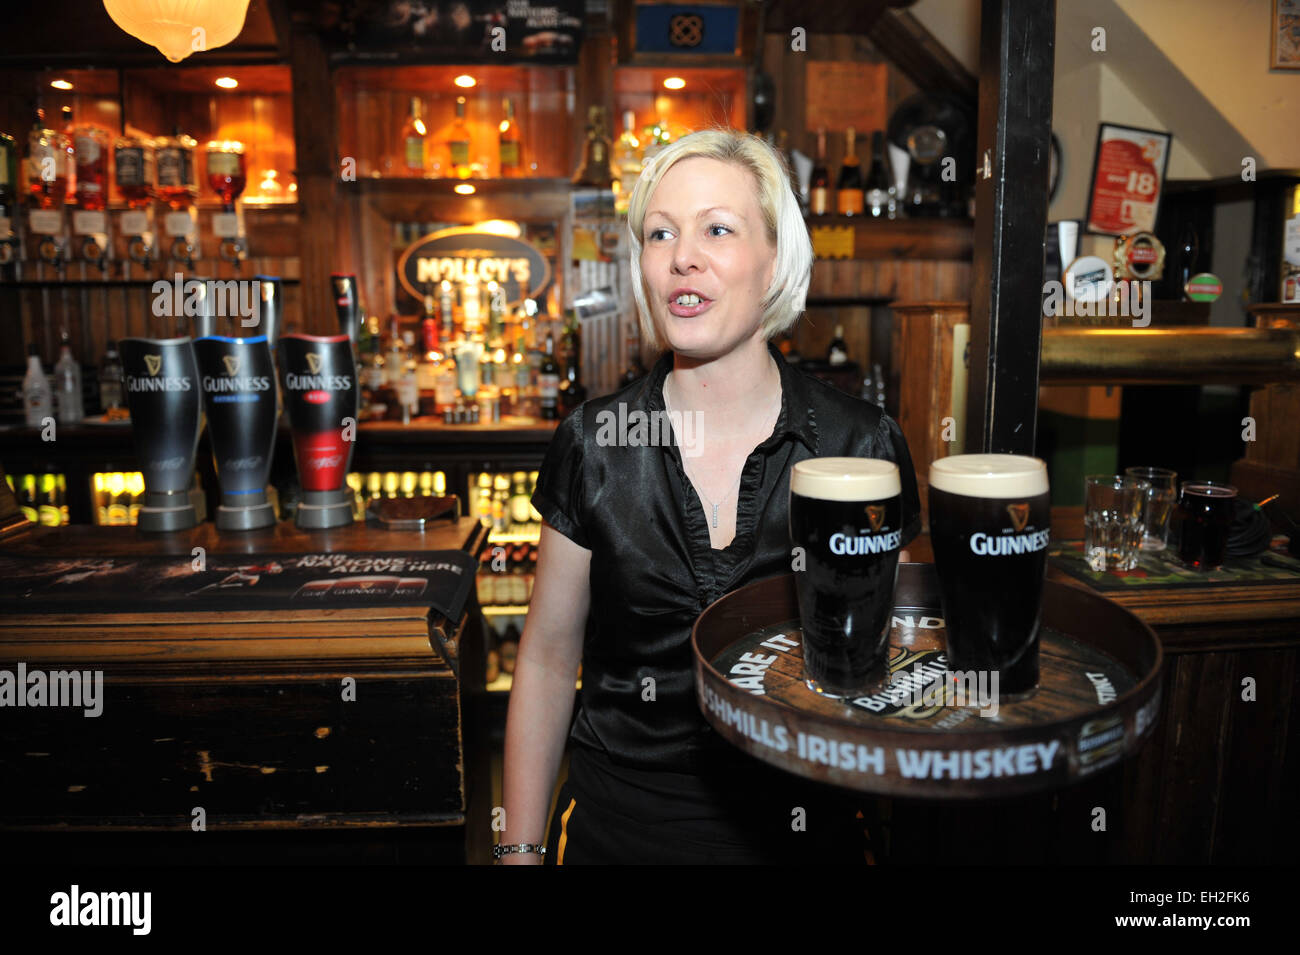 Bar Maid carries a tray of Guinness in a local pub, Lancashire. - Stock Image